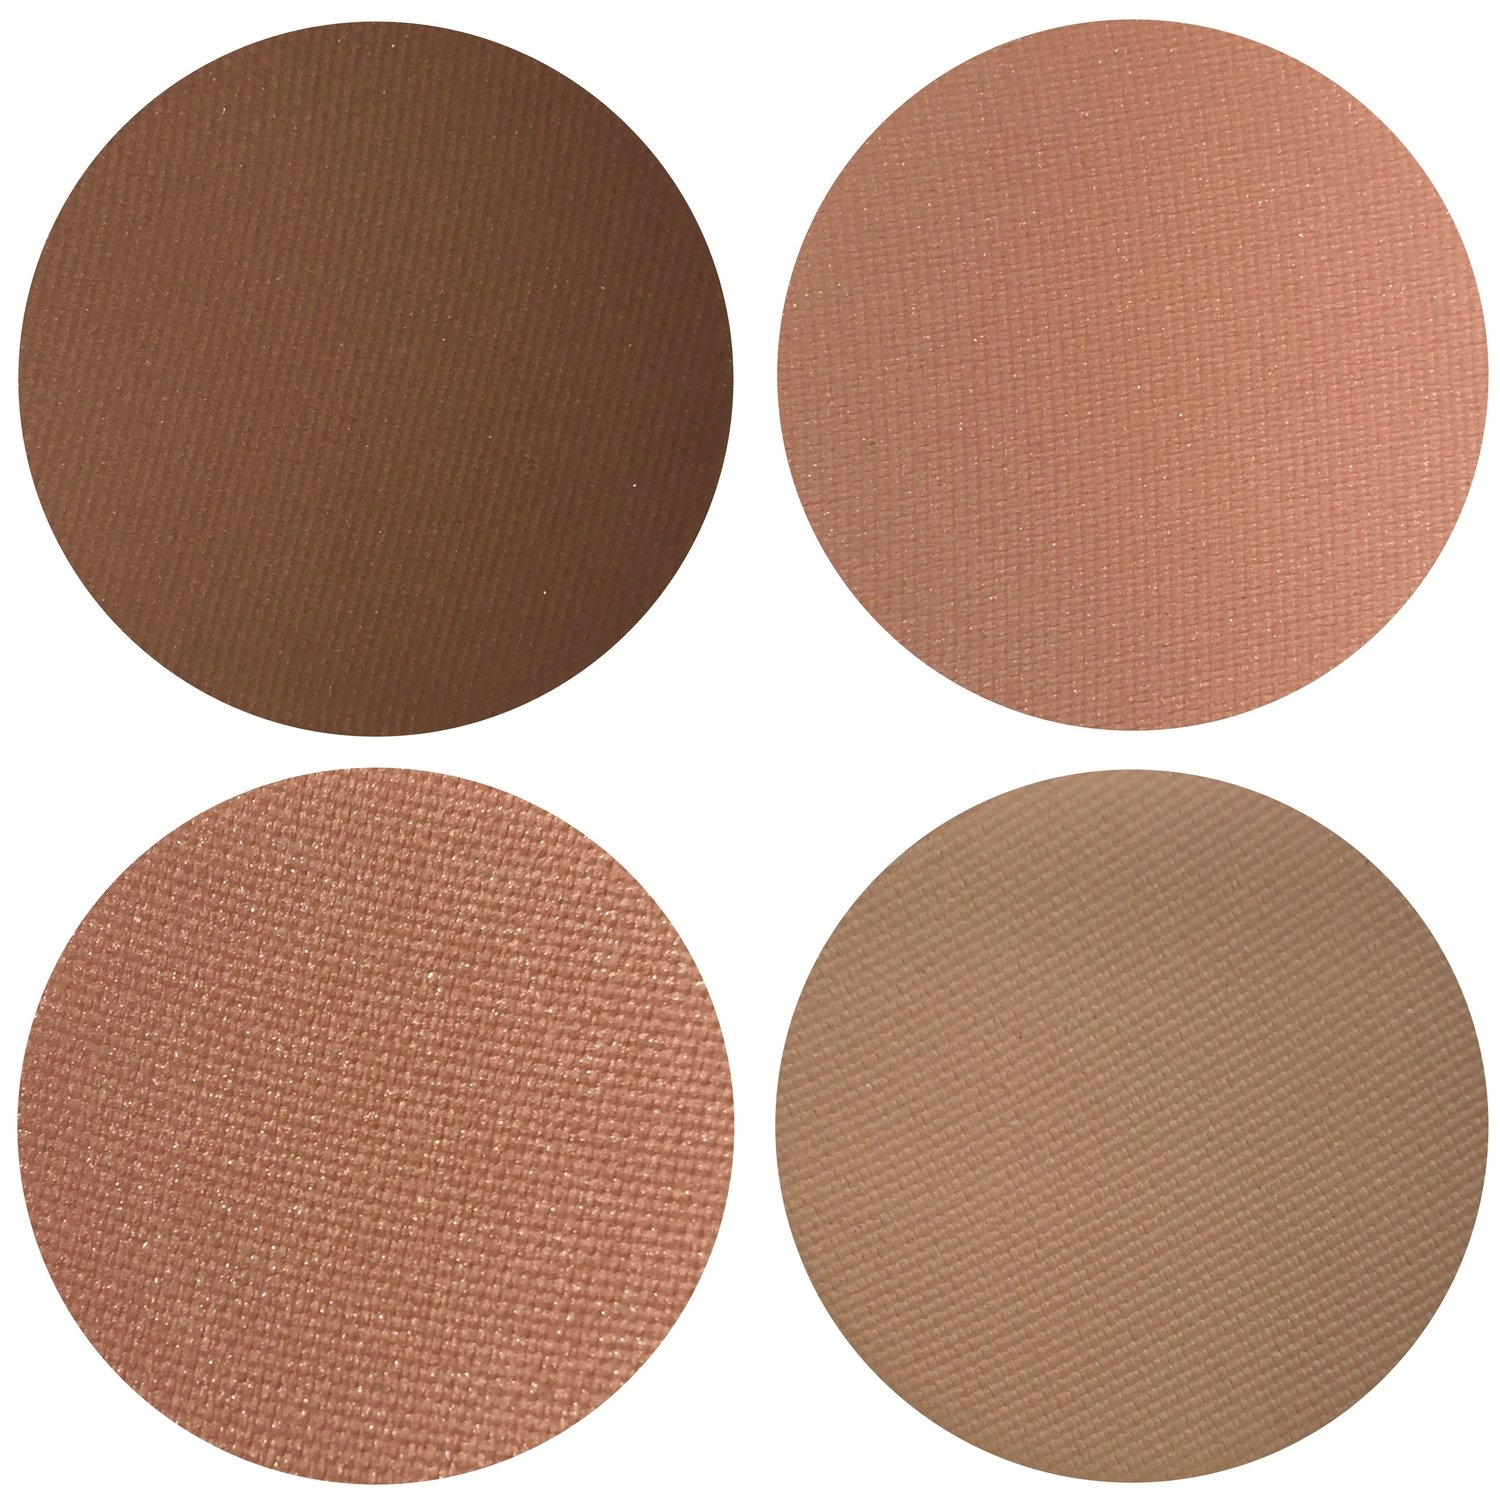 Keep It Peachy Collection Eyeshadow Quad: 4 Single Eye Shadows Makeup Magnetic Refill Pan 26mm, Paraben Free, Gluten Free, Made in the USA